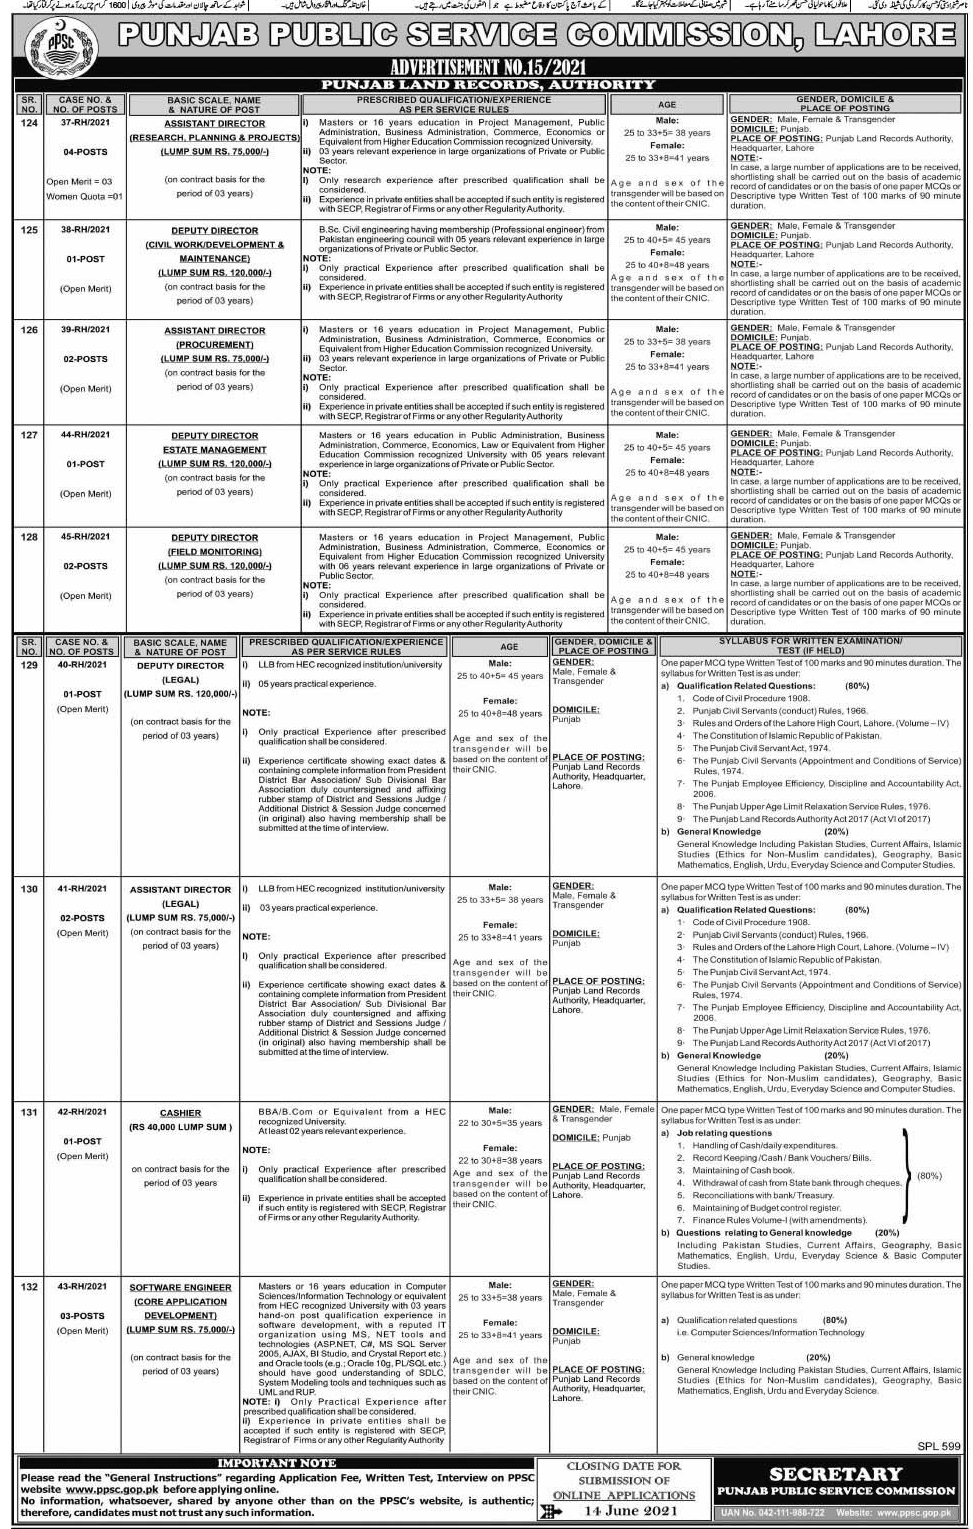 PPSC Jobs 2021 in Punjab Land Records Authority